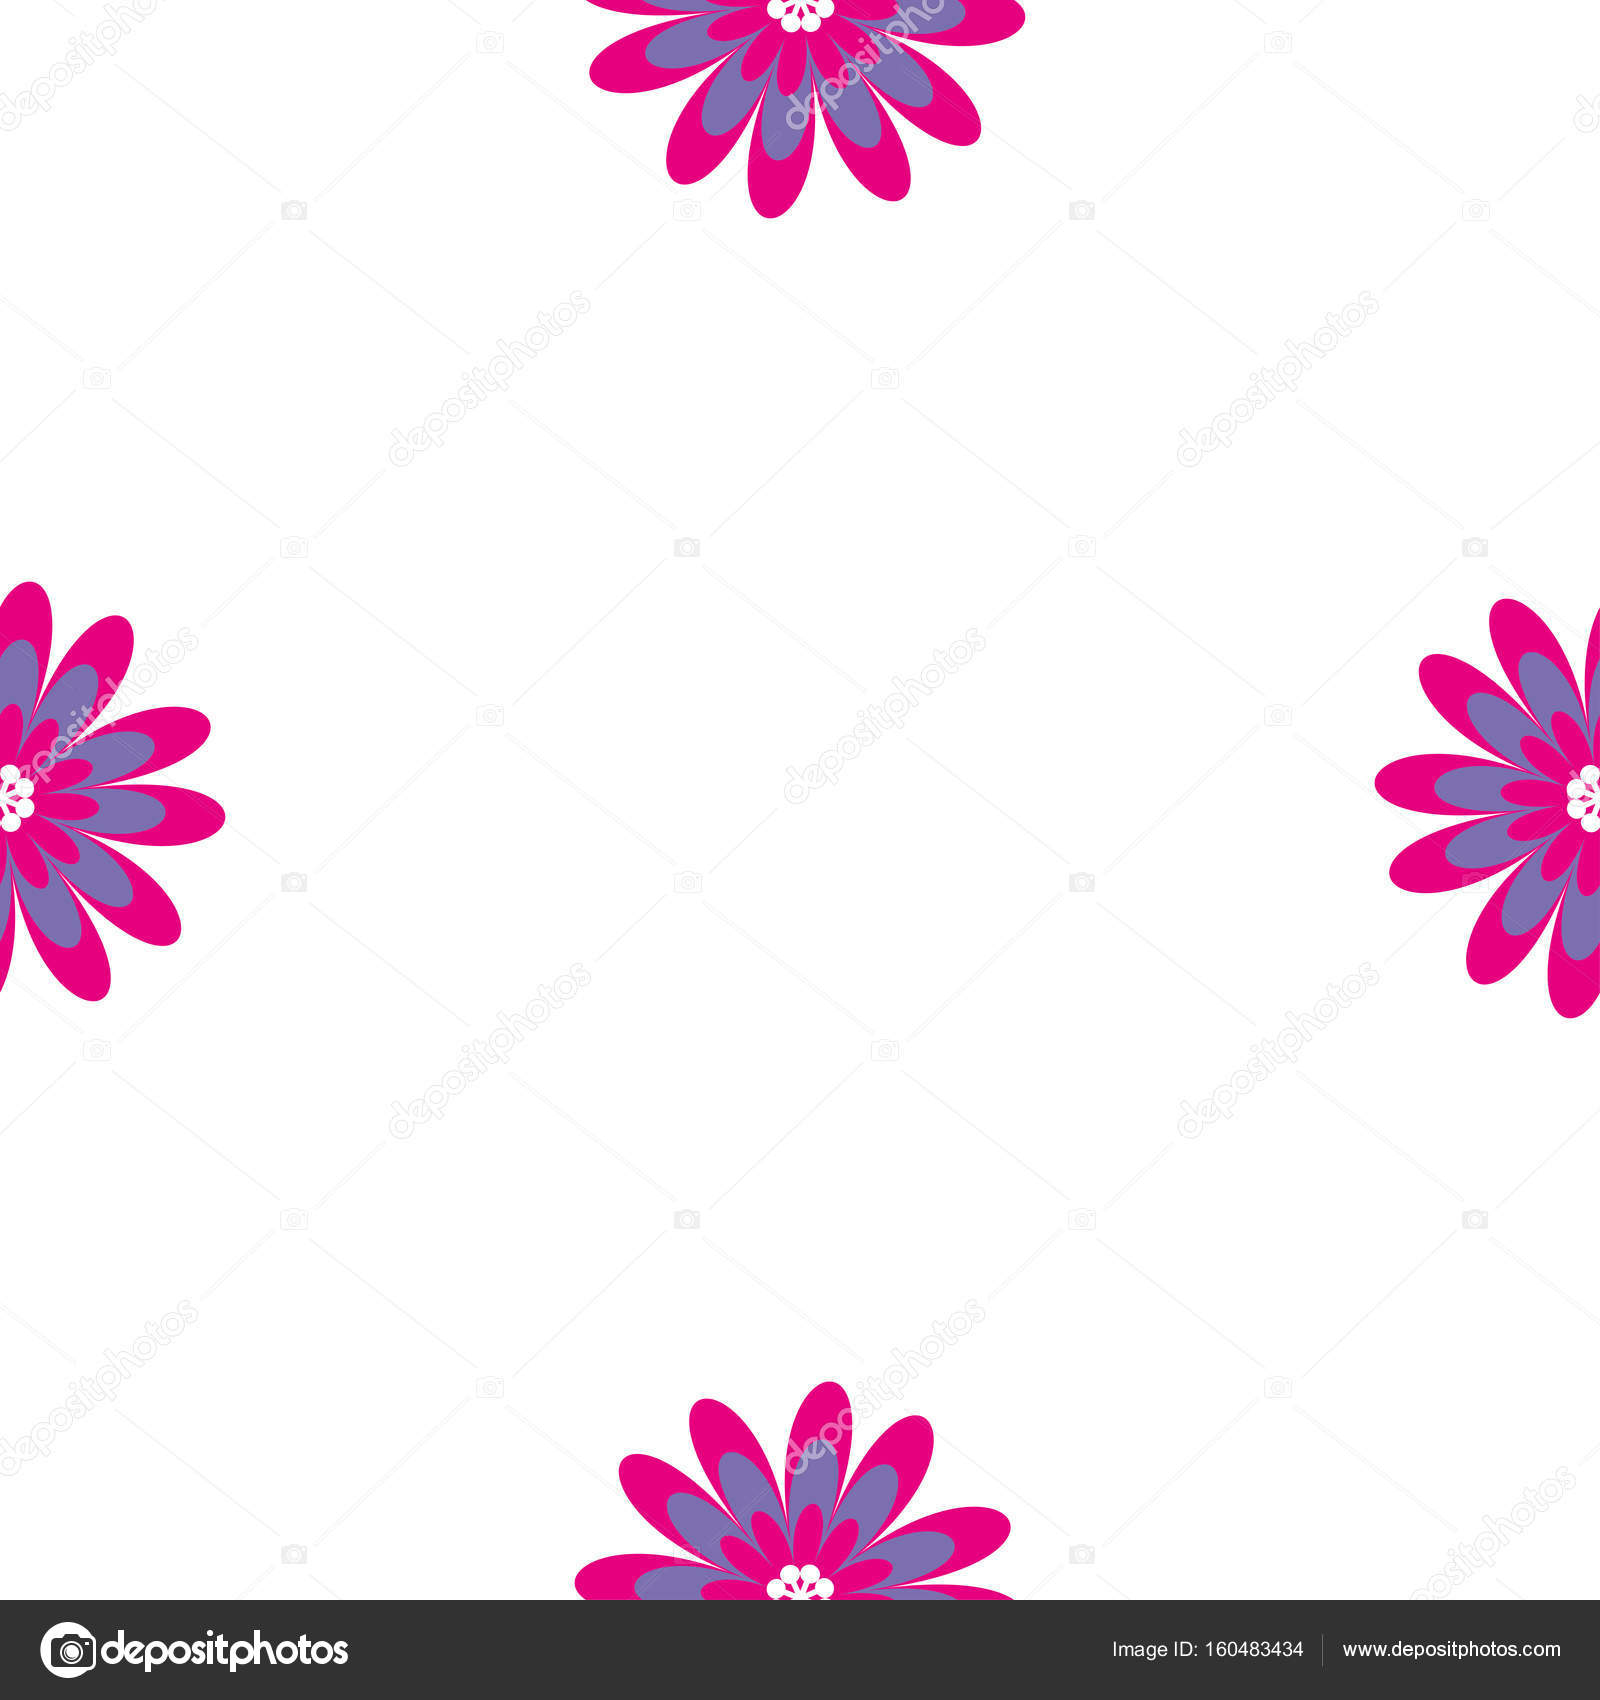 floral seamless pattern vector illustration with abstract flowers repeating background for printing on fabric - Pictures For Printing